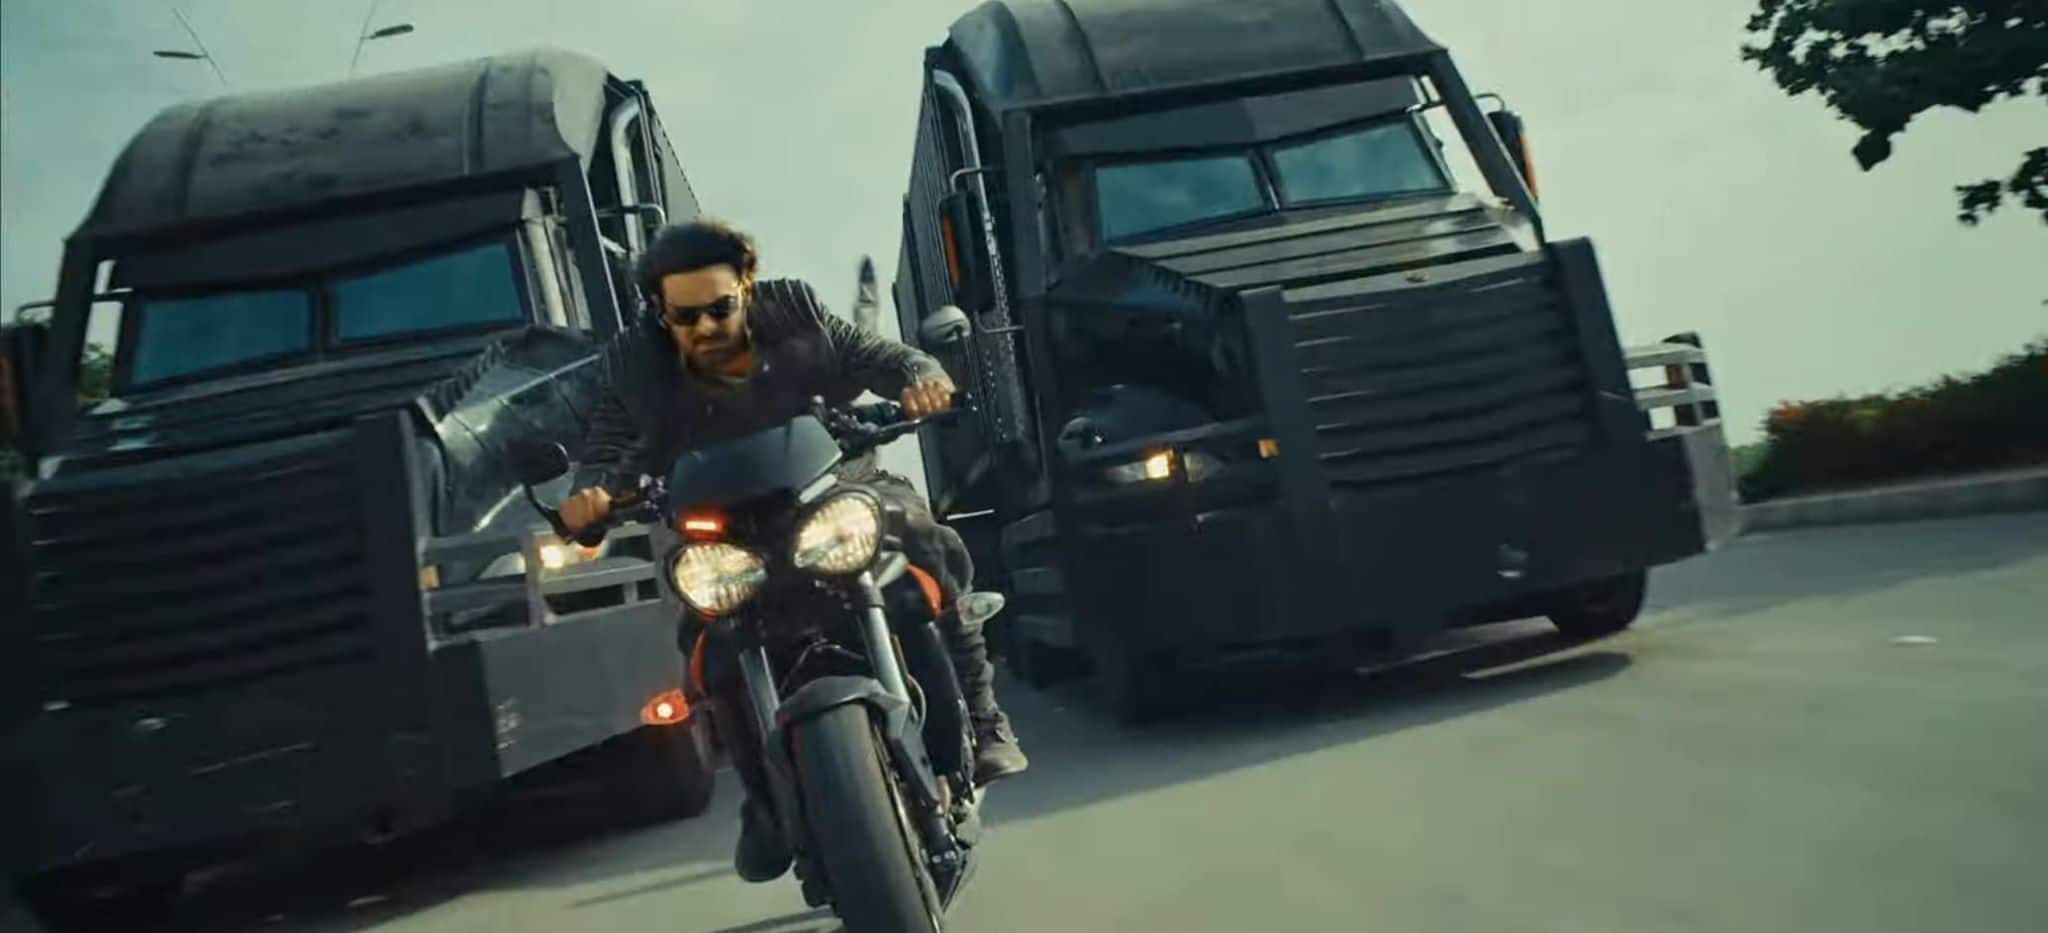 Saaho Review: The Prabhas Starrer 350 Crore Film Turns Out To Be A Colossal Disappointment!